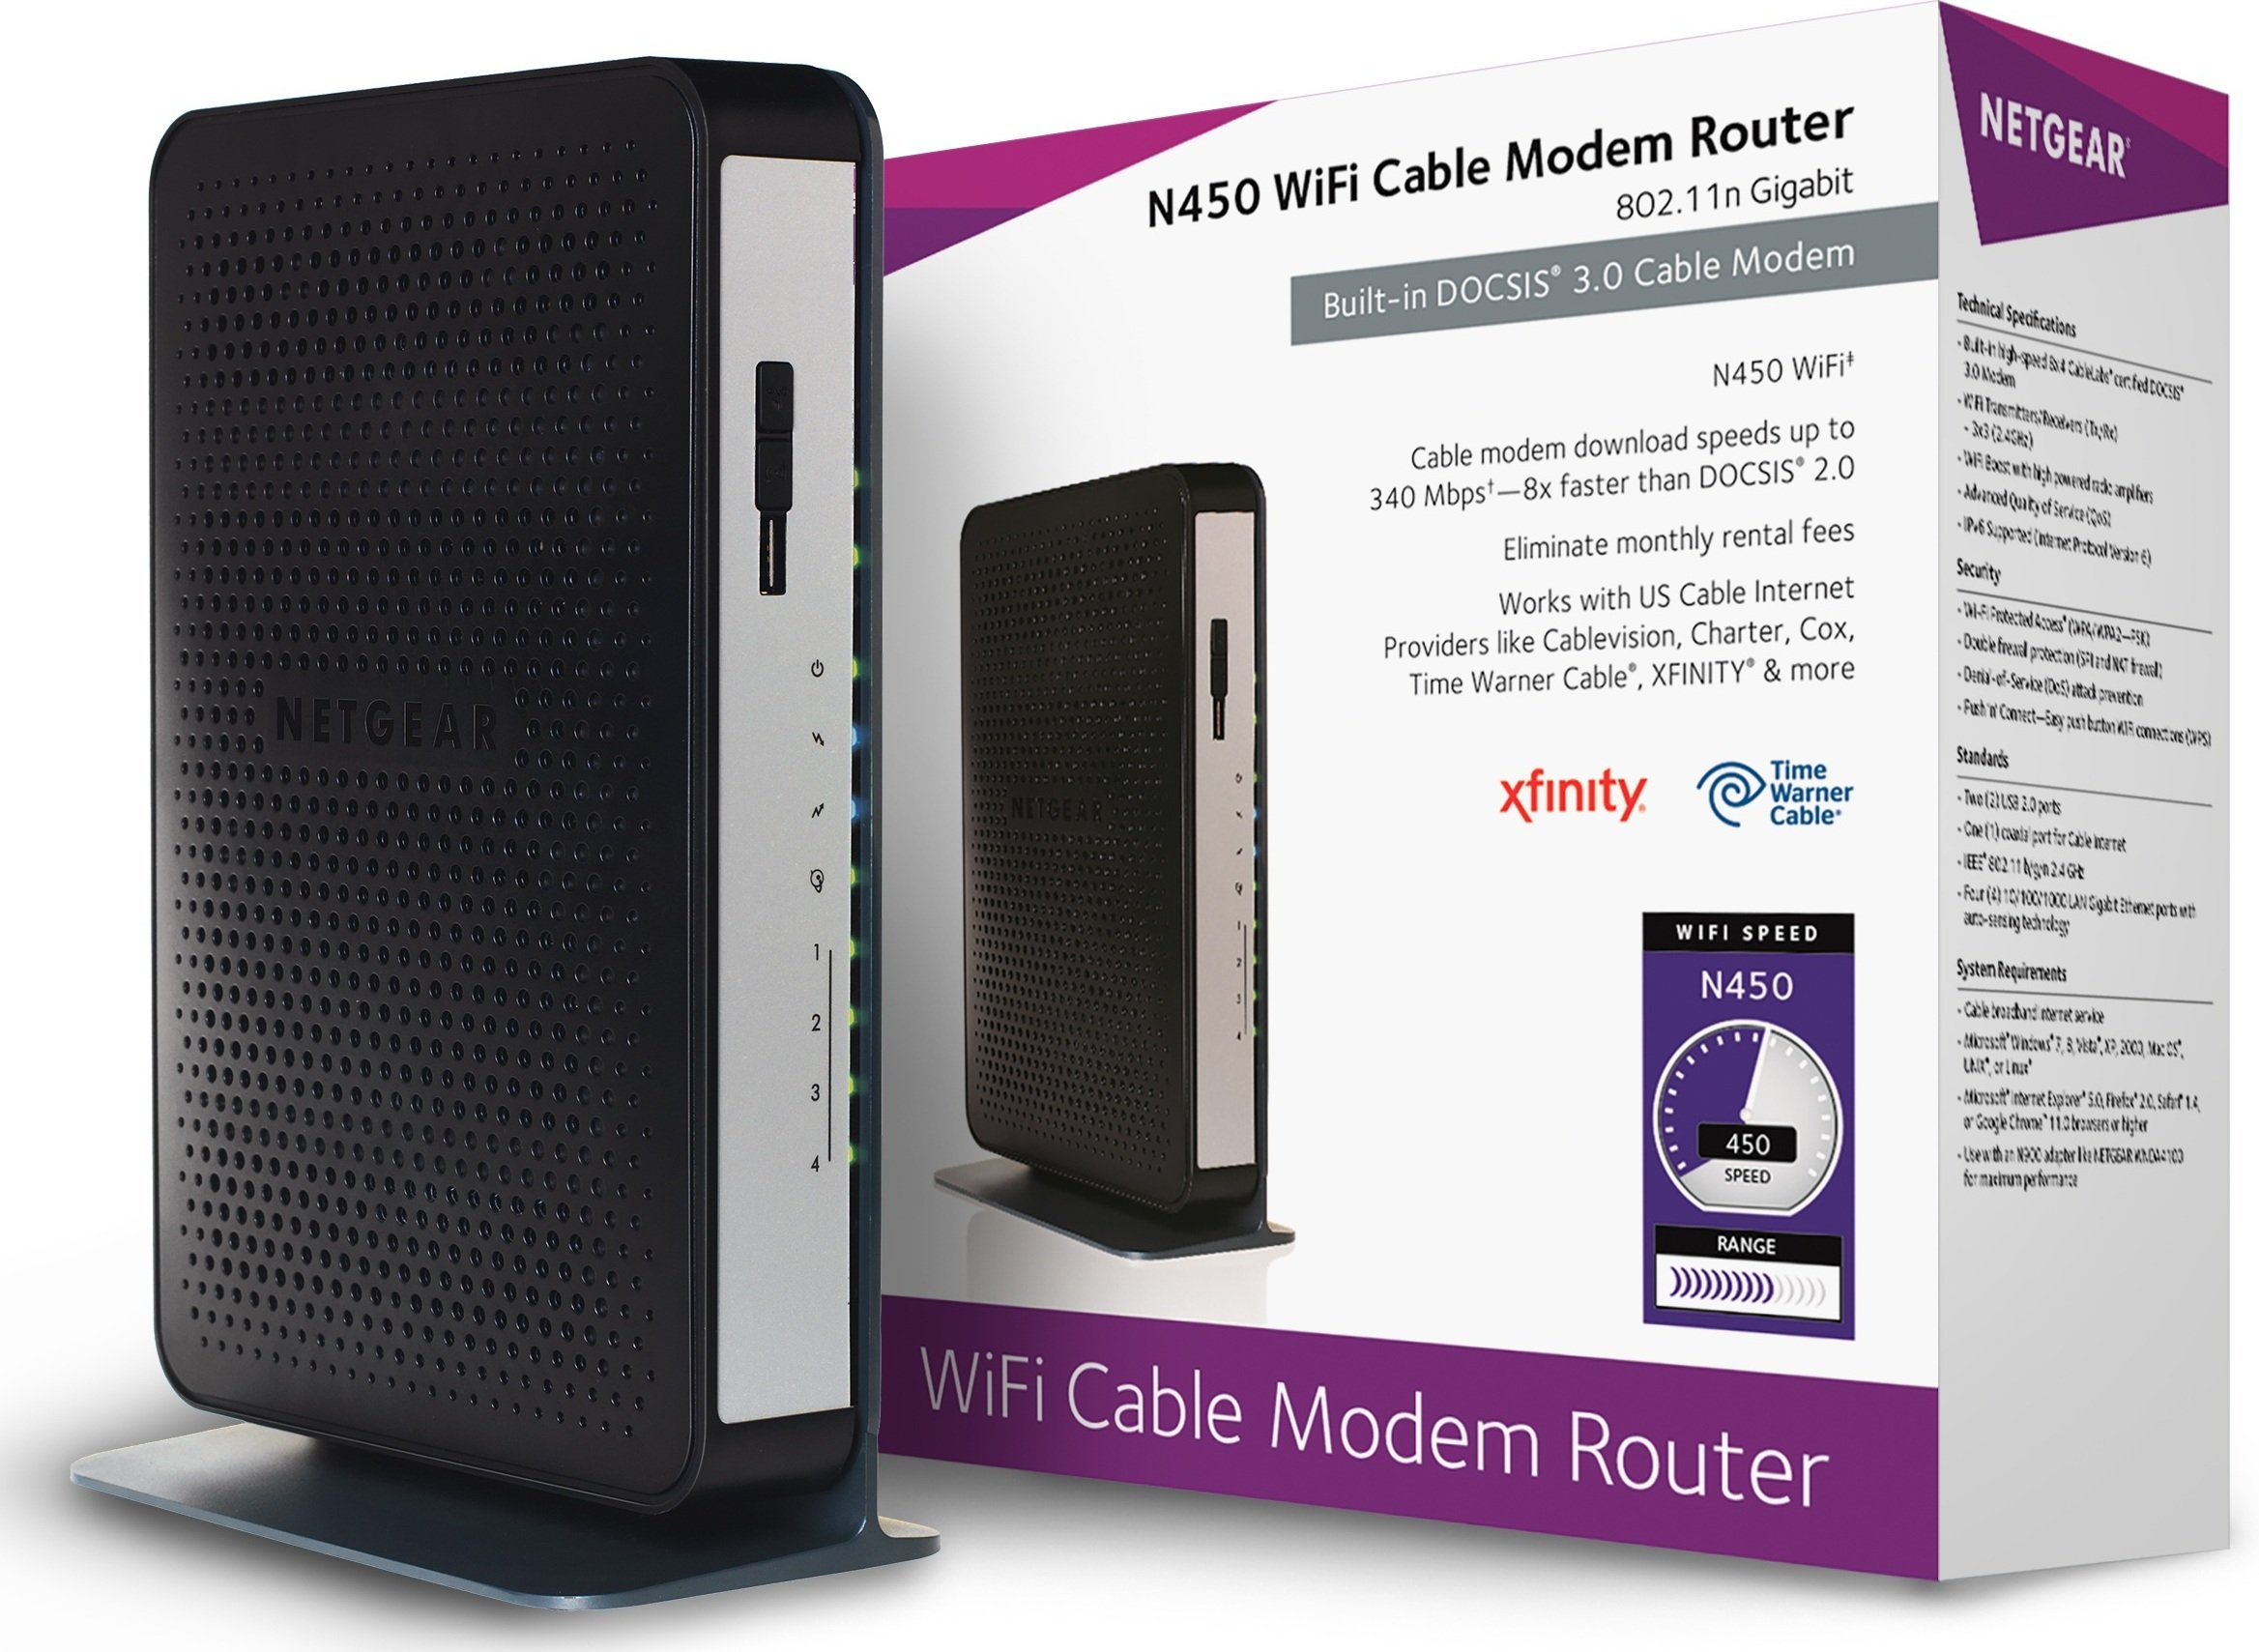 NETGEAR N450-100NAS (8x4) WiFi DOCSIS 3.0 Cable Modem Router (N450) Certified for Xfinity from Comcast, Spectrum, Cox, Cablevision & More by NETGEAR